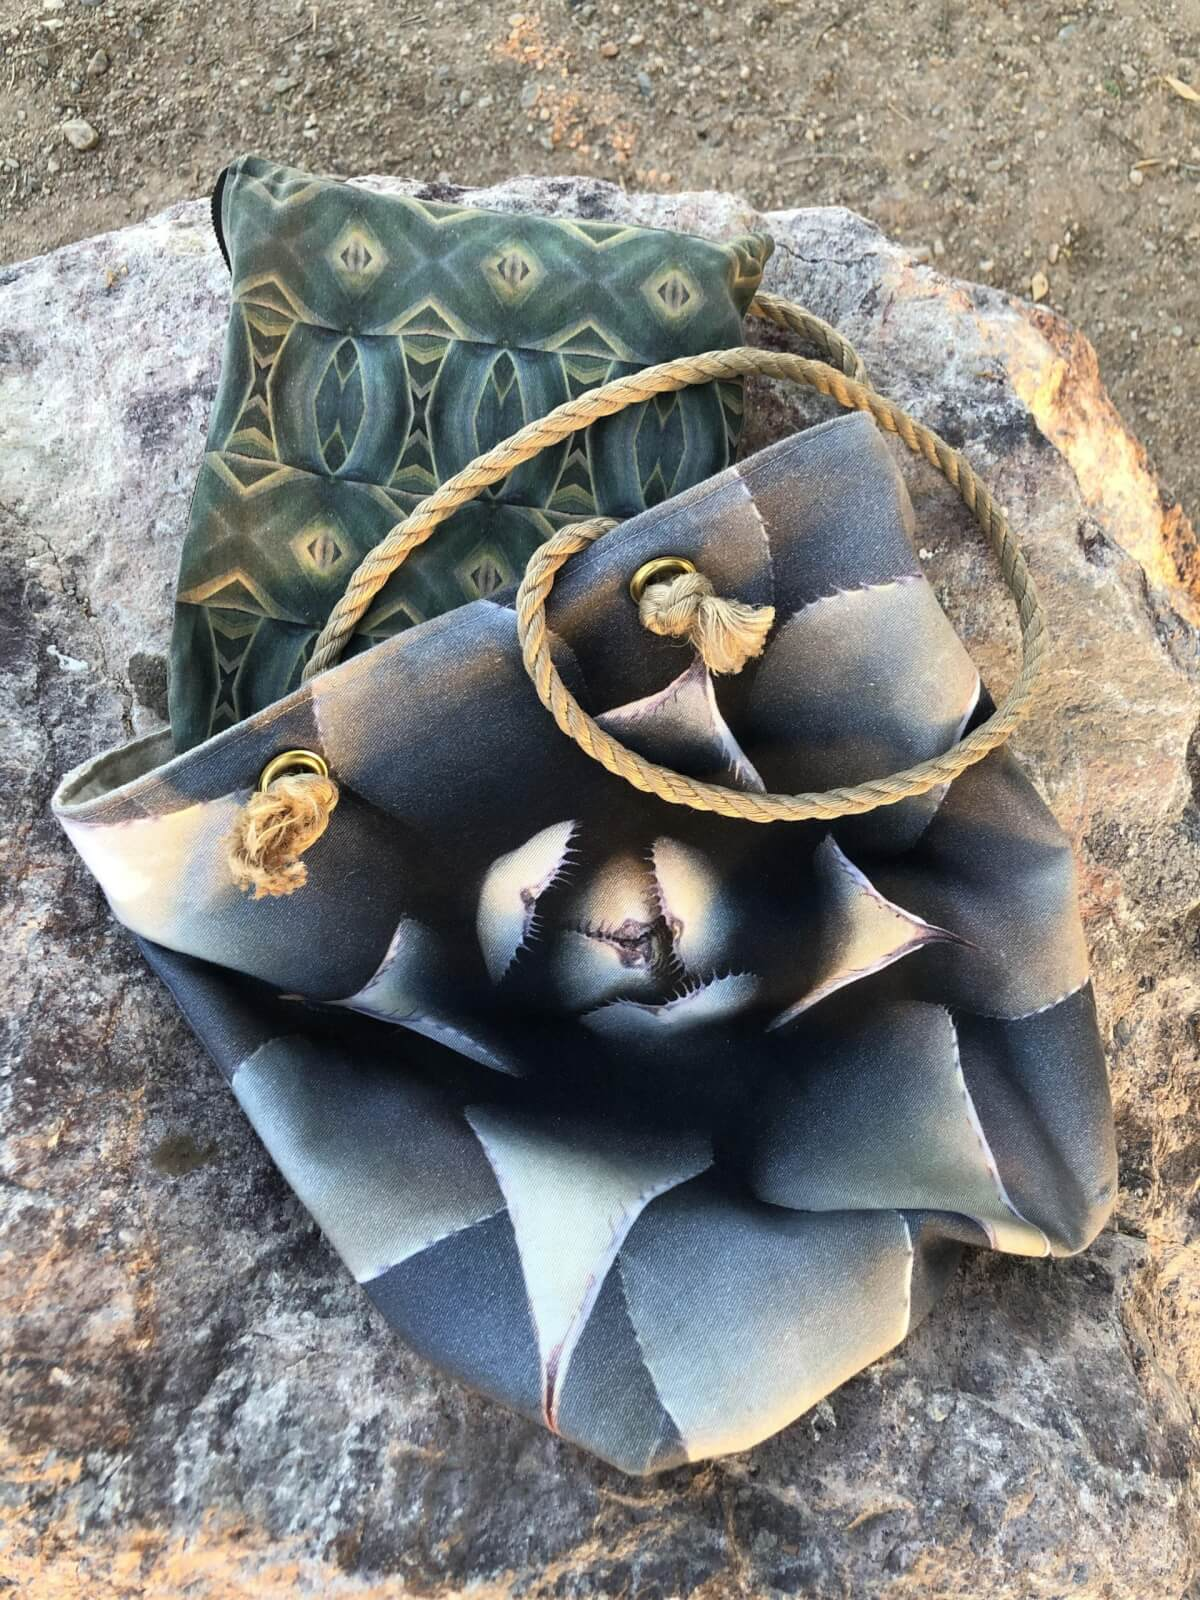 A bag with a cactus design and rope handles is laid on a rock with a pillow inside.